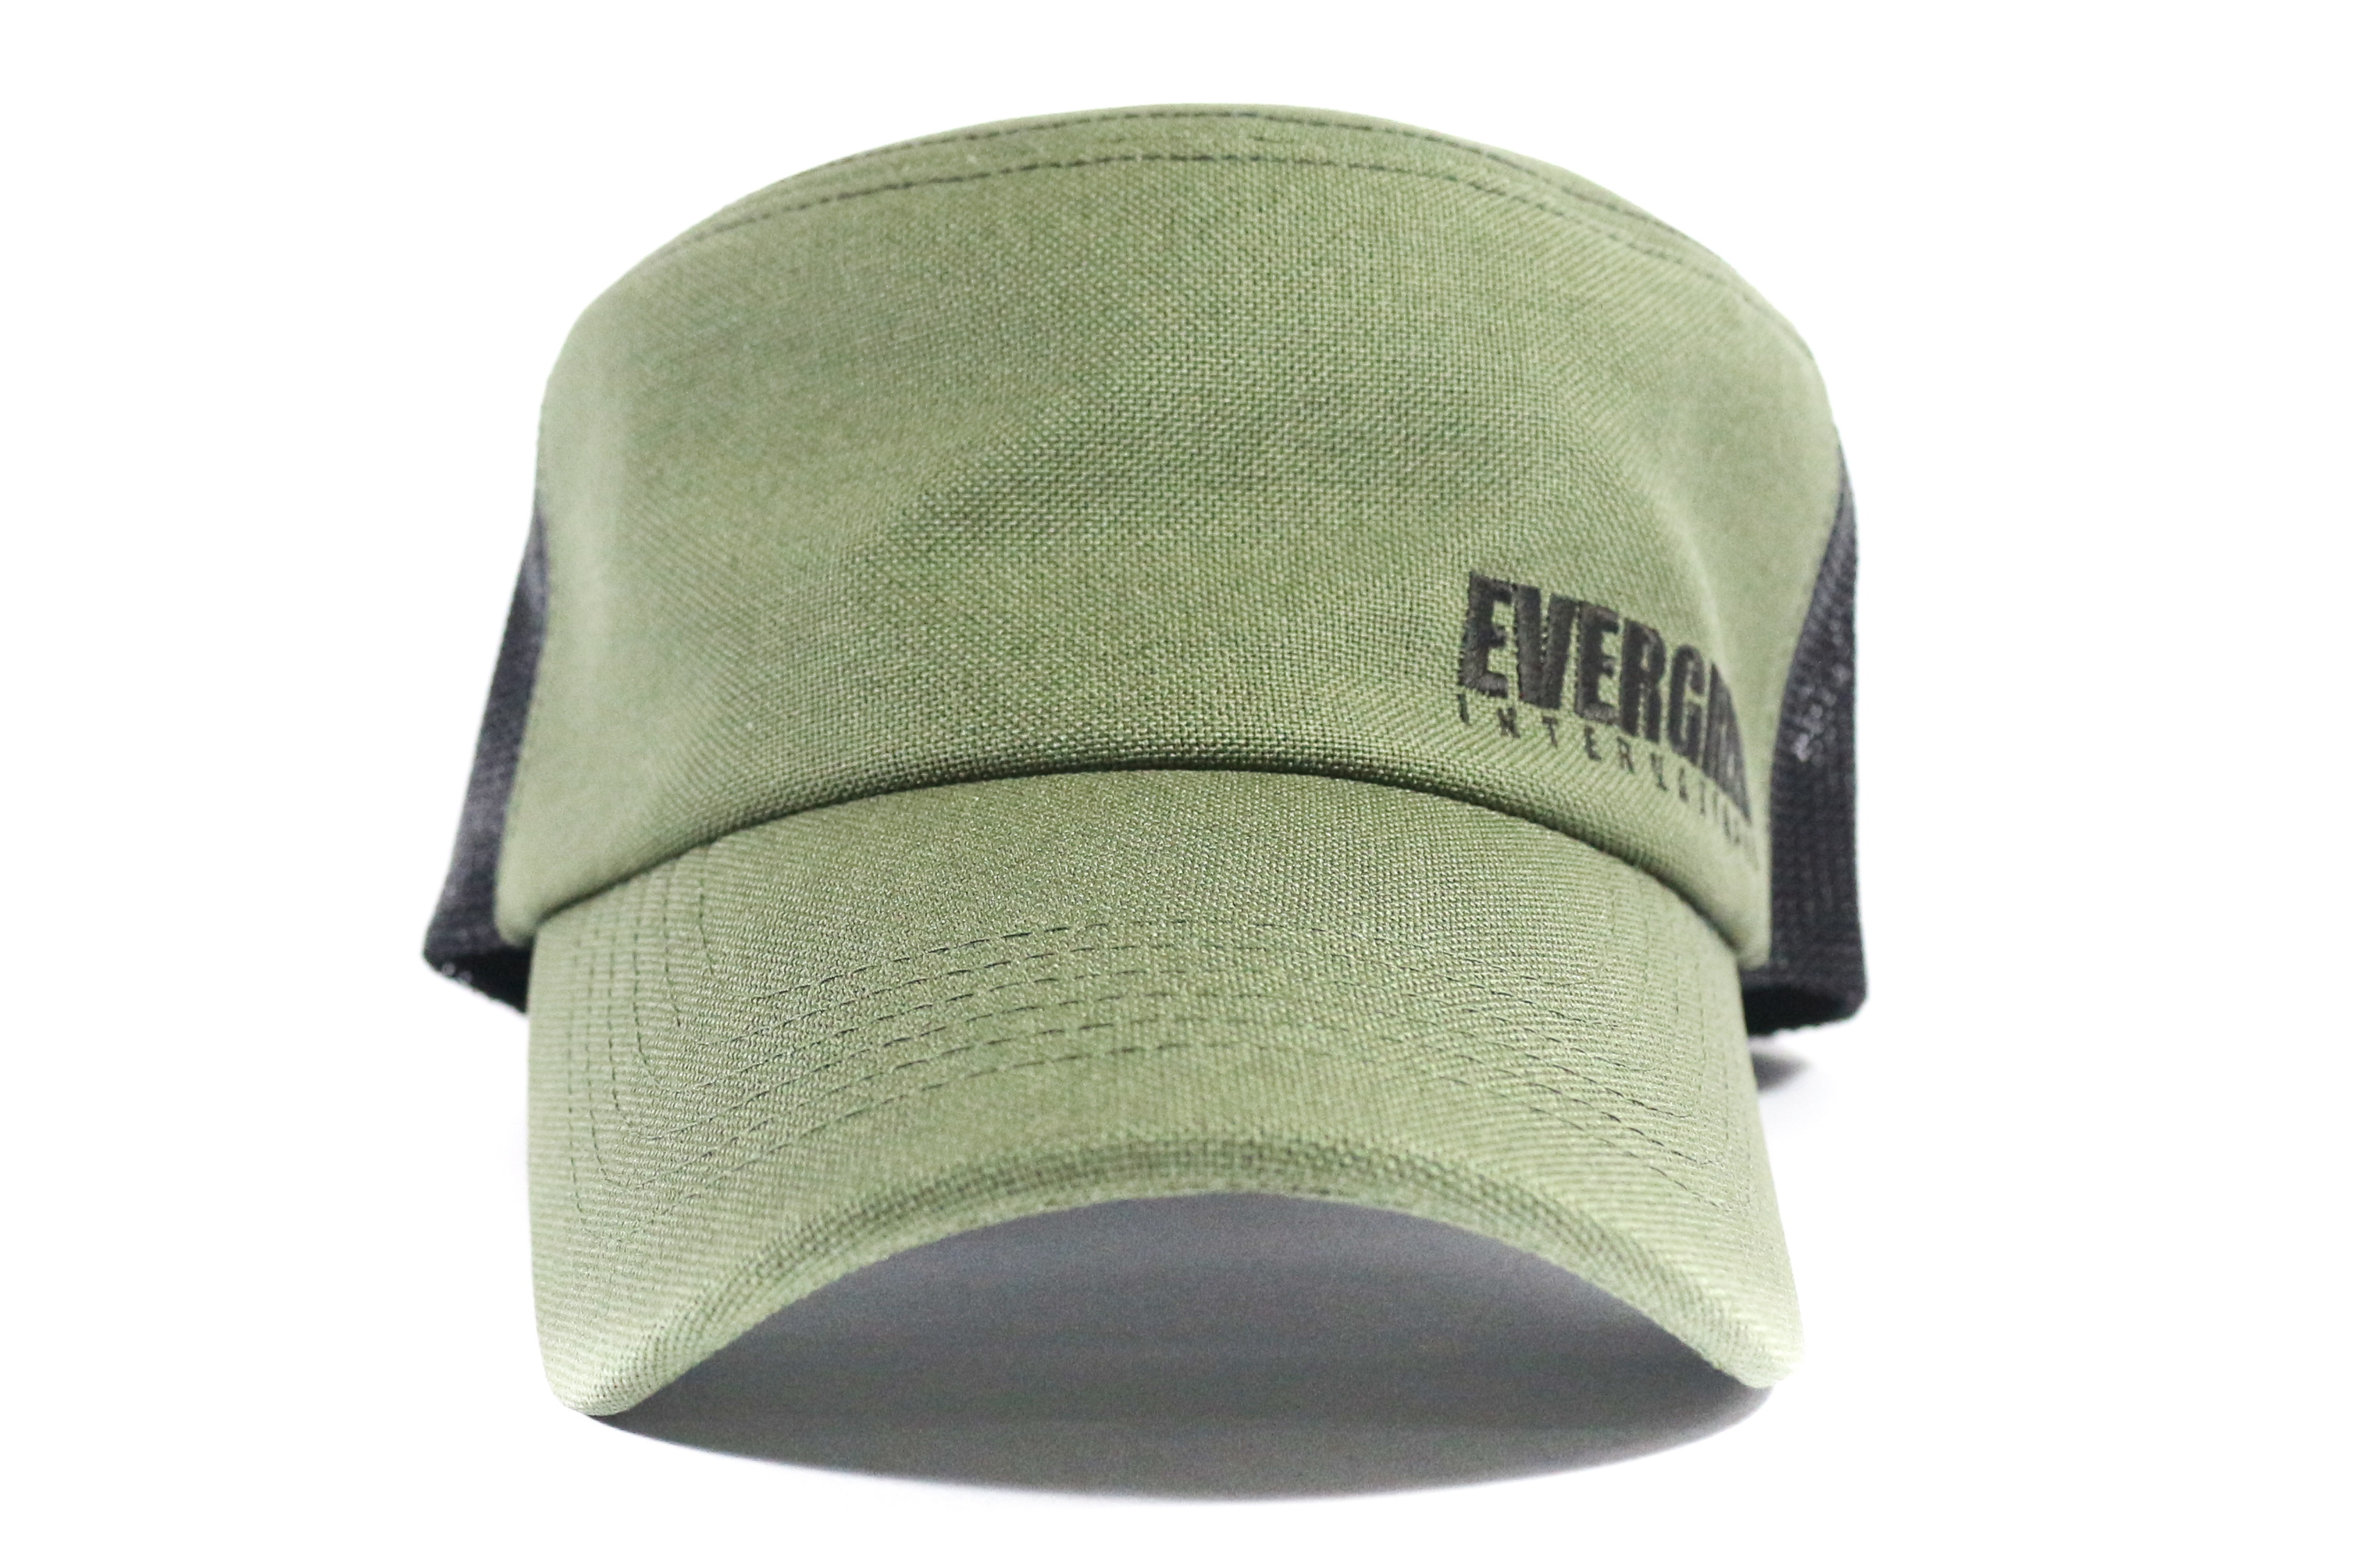 Evergreen Cap Mesh Work Cap Military Green (3240)